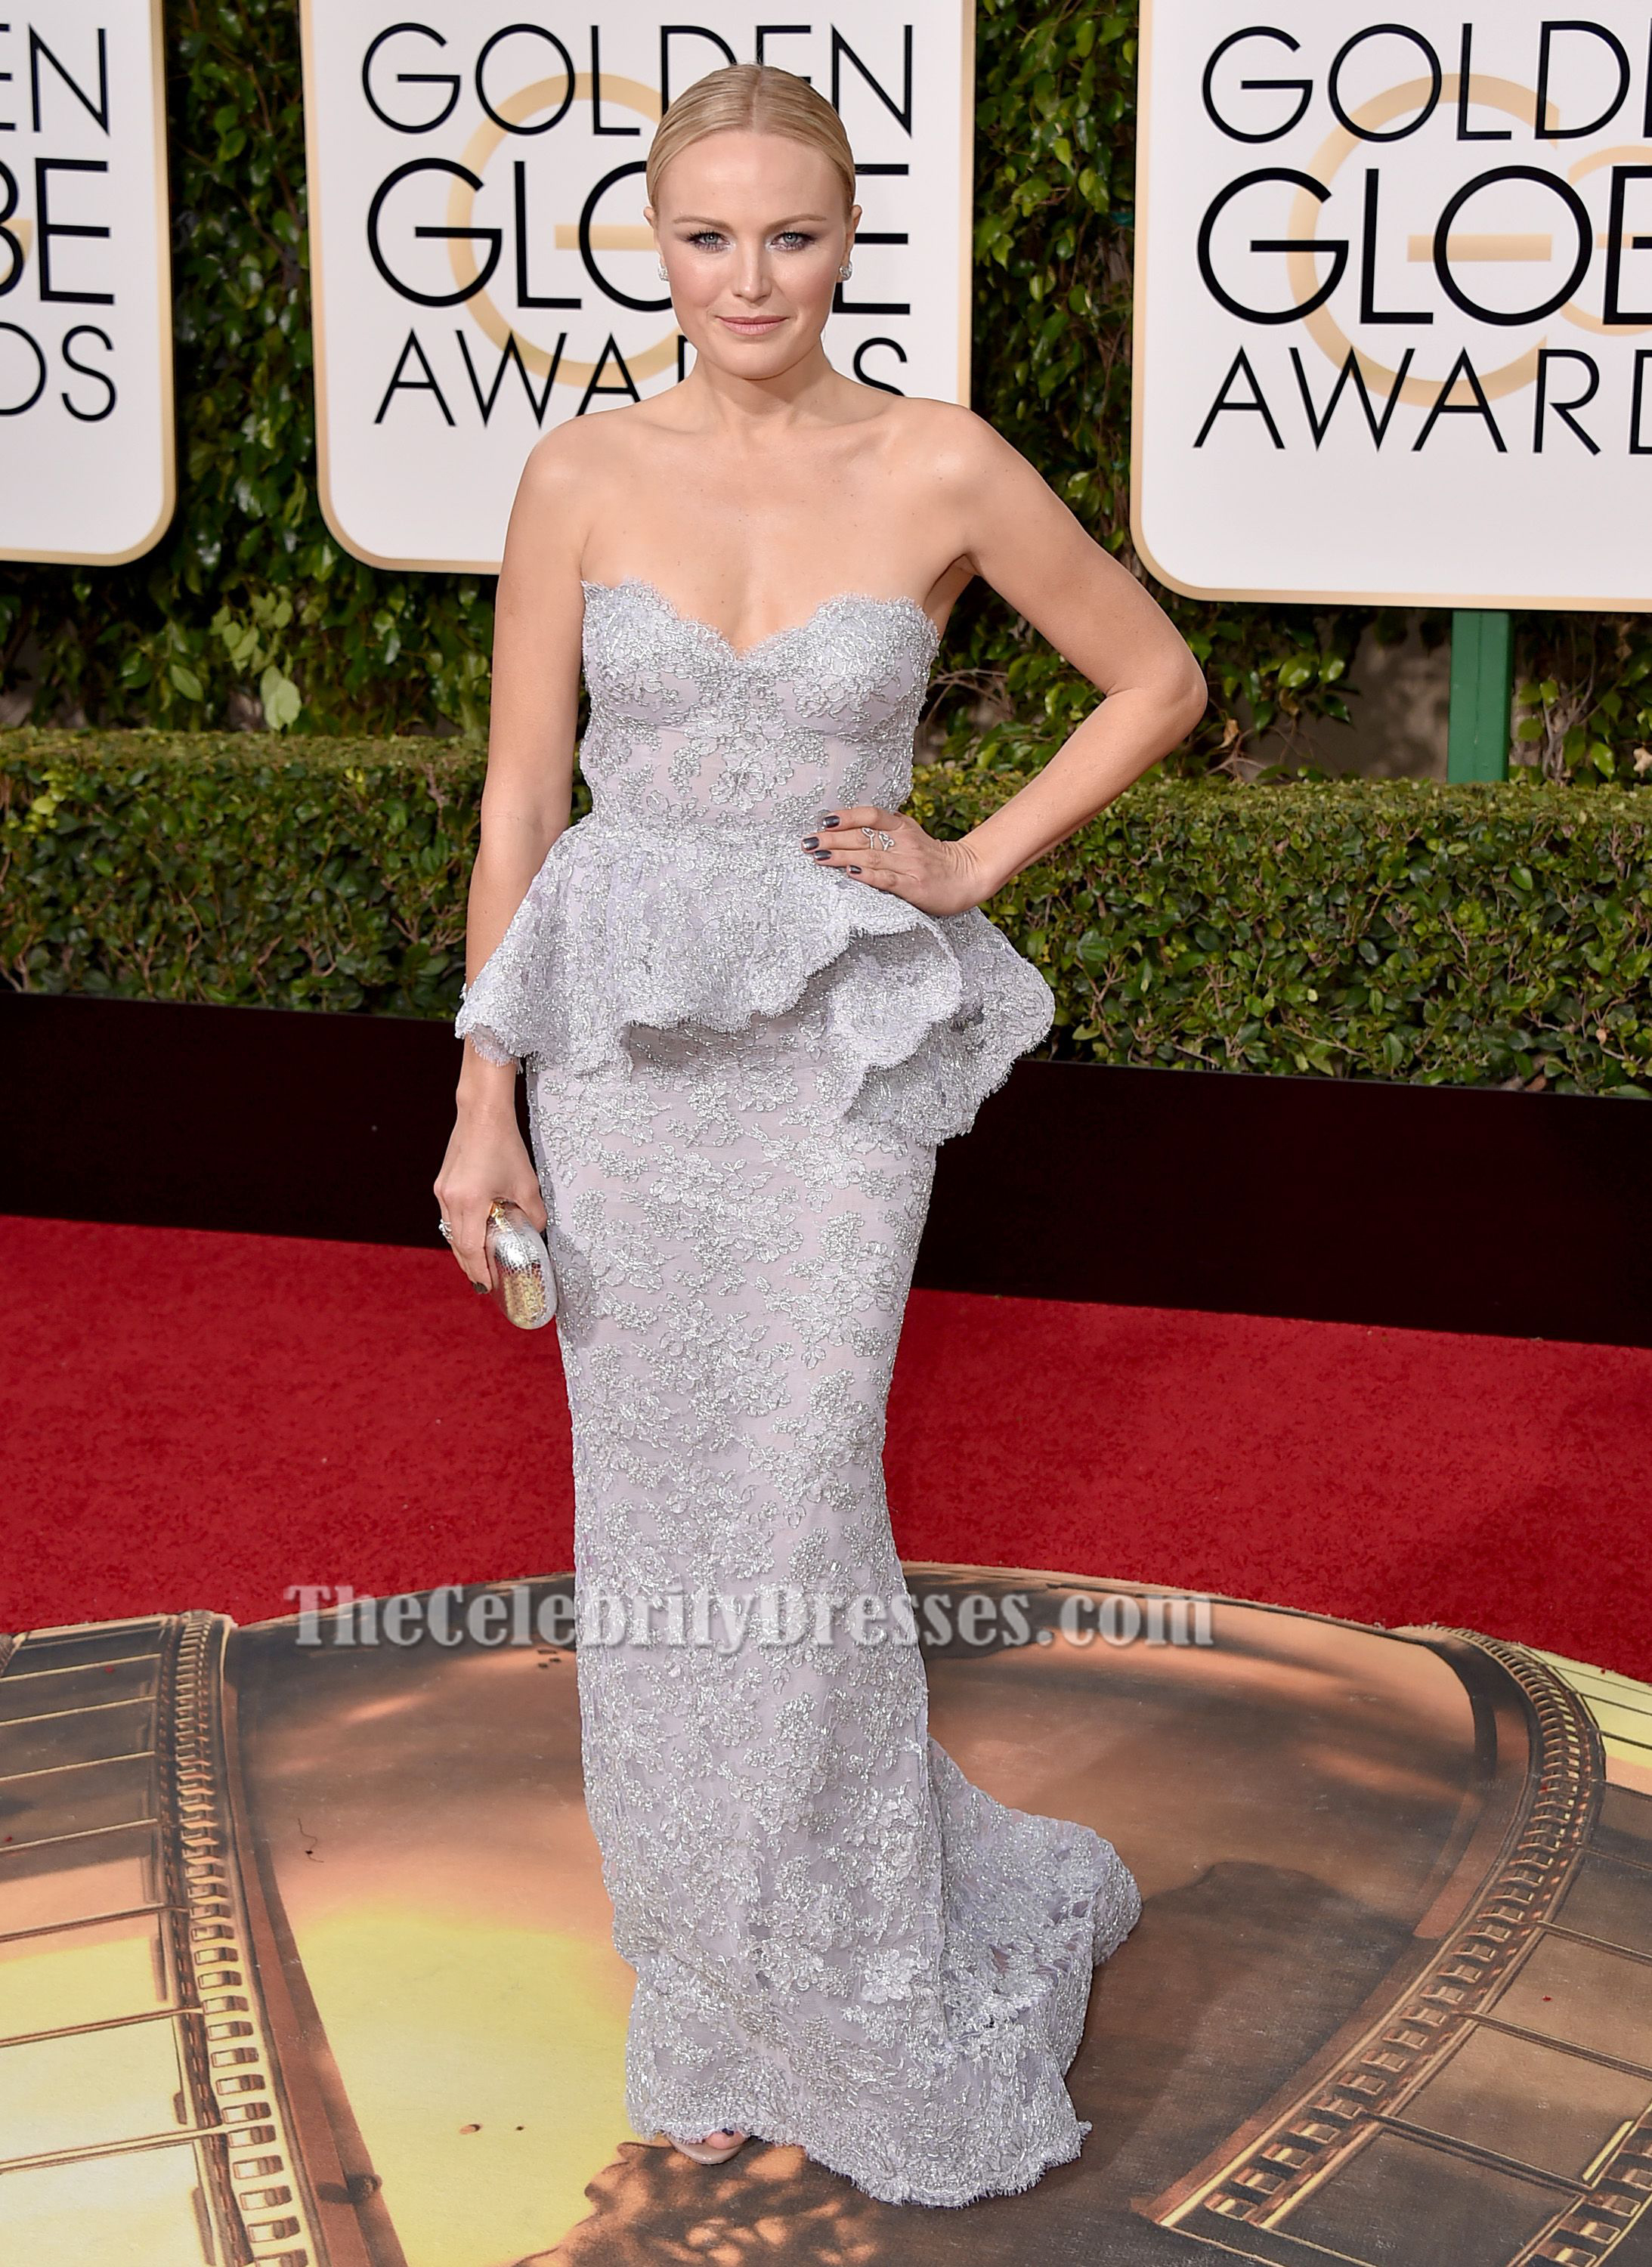 Malin Akerman Silver Lace Evening Dress 2016 Golden Globes Red Carpet Gown Thecelebritydresses